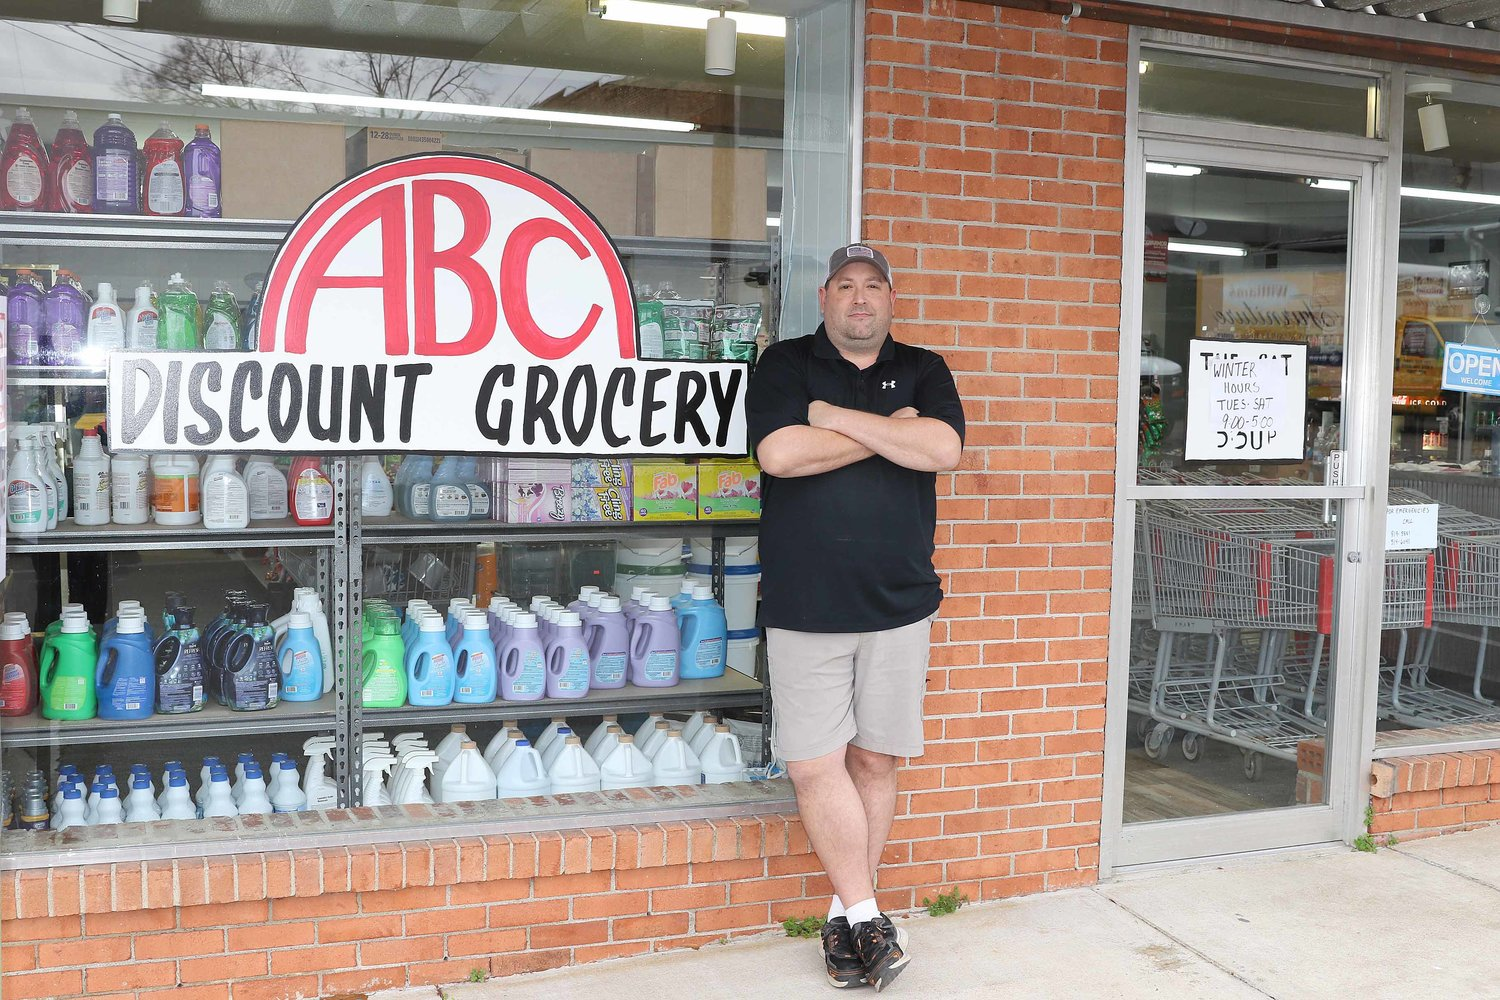 Jay Cooper opened ABC Discount Grocery in 2020.